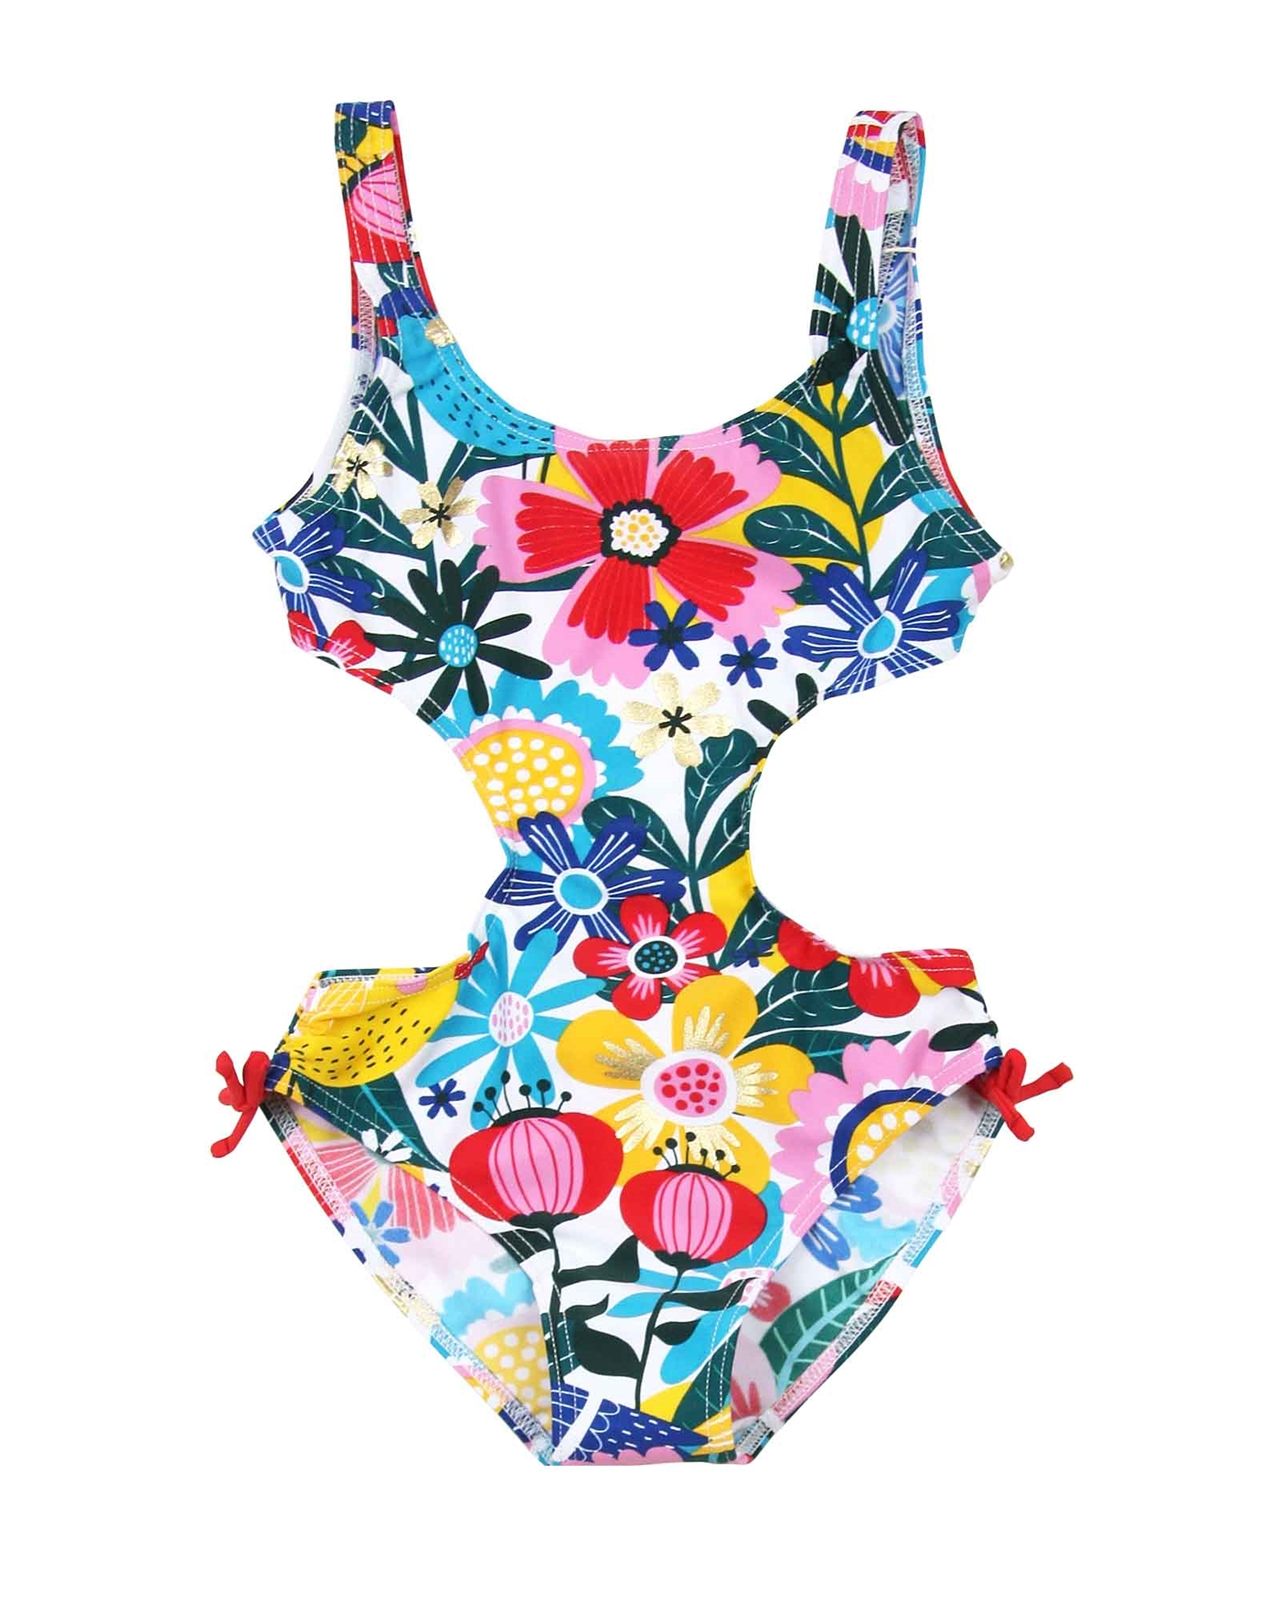 a8091f6de0 BOBOLI Girl's One-piece Swimsuit in Floral Print, Sizes 4-16 ...